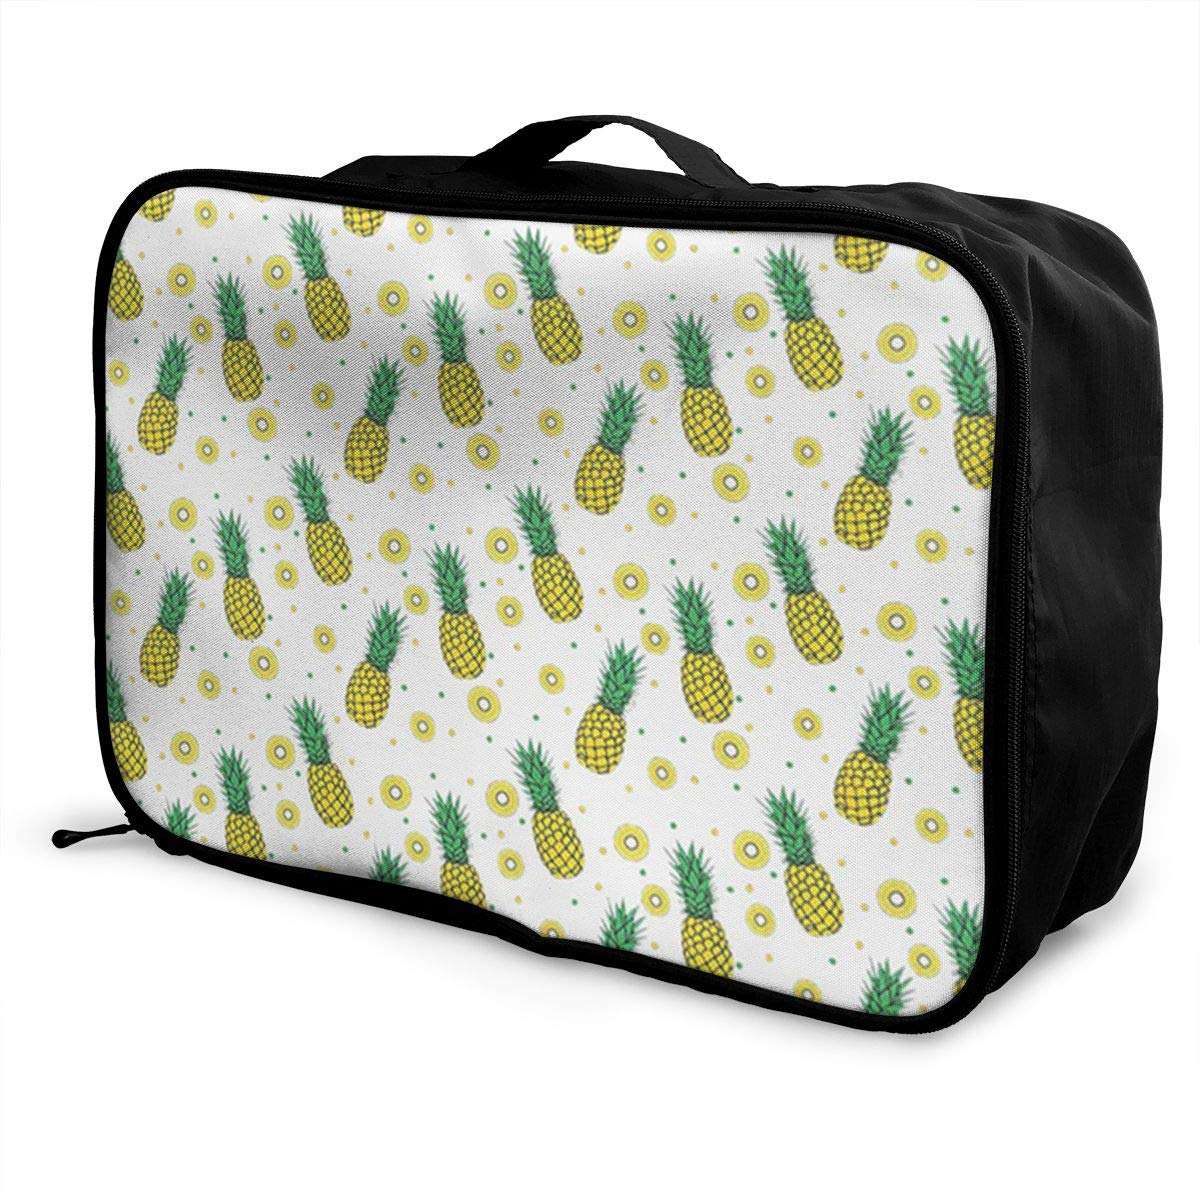 ADGAI Pineapples Fruit and Slices Pattern Canvas Travel Weekender Bag,Fashion Custom Lightweight Large Capacity Portable Luggage Bag,Suitcase Trolley Bag